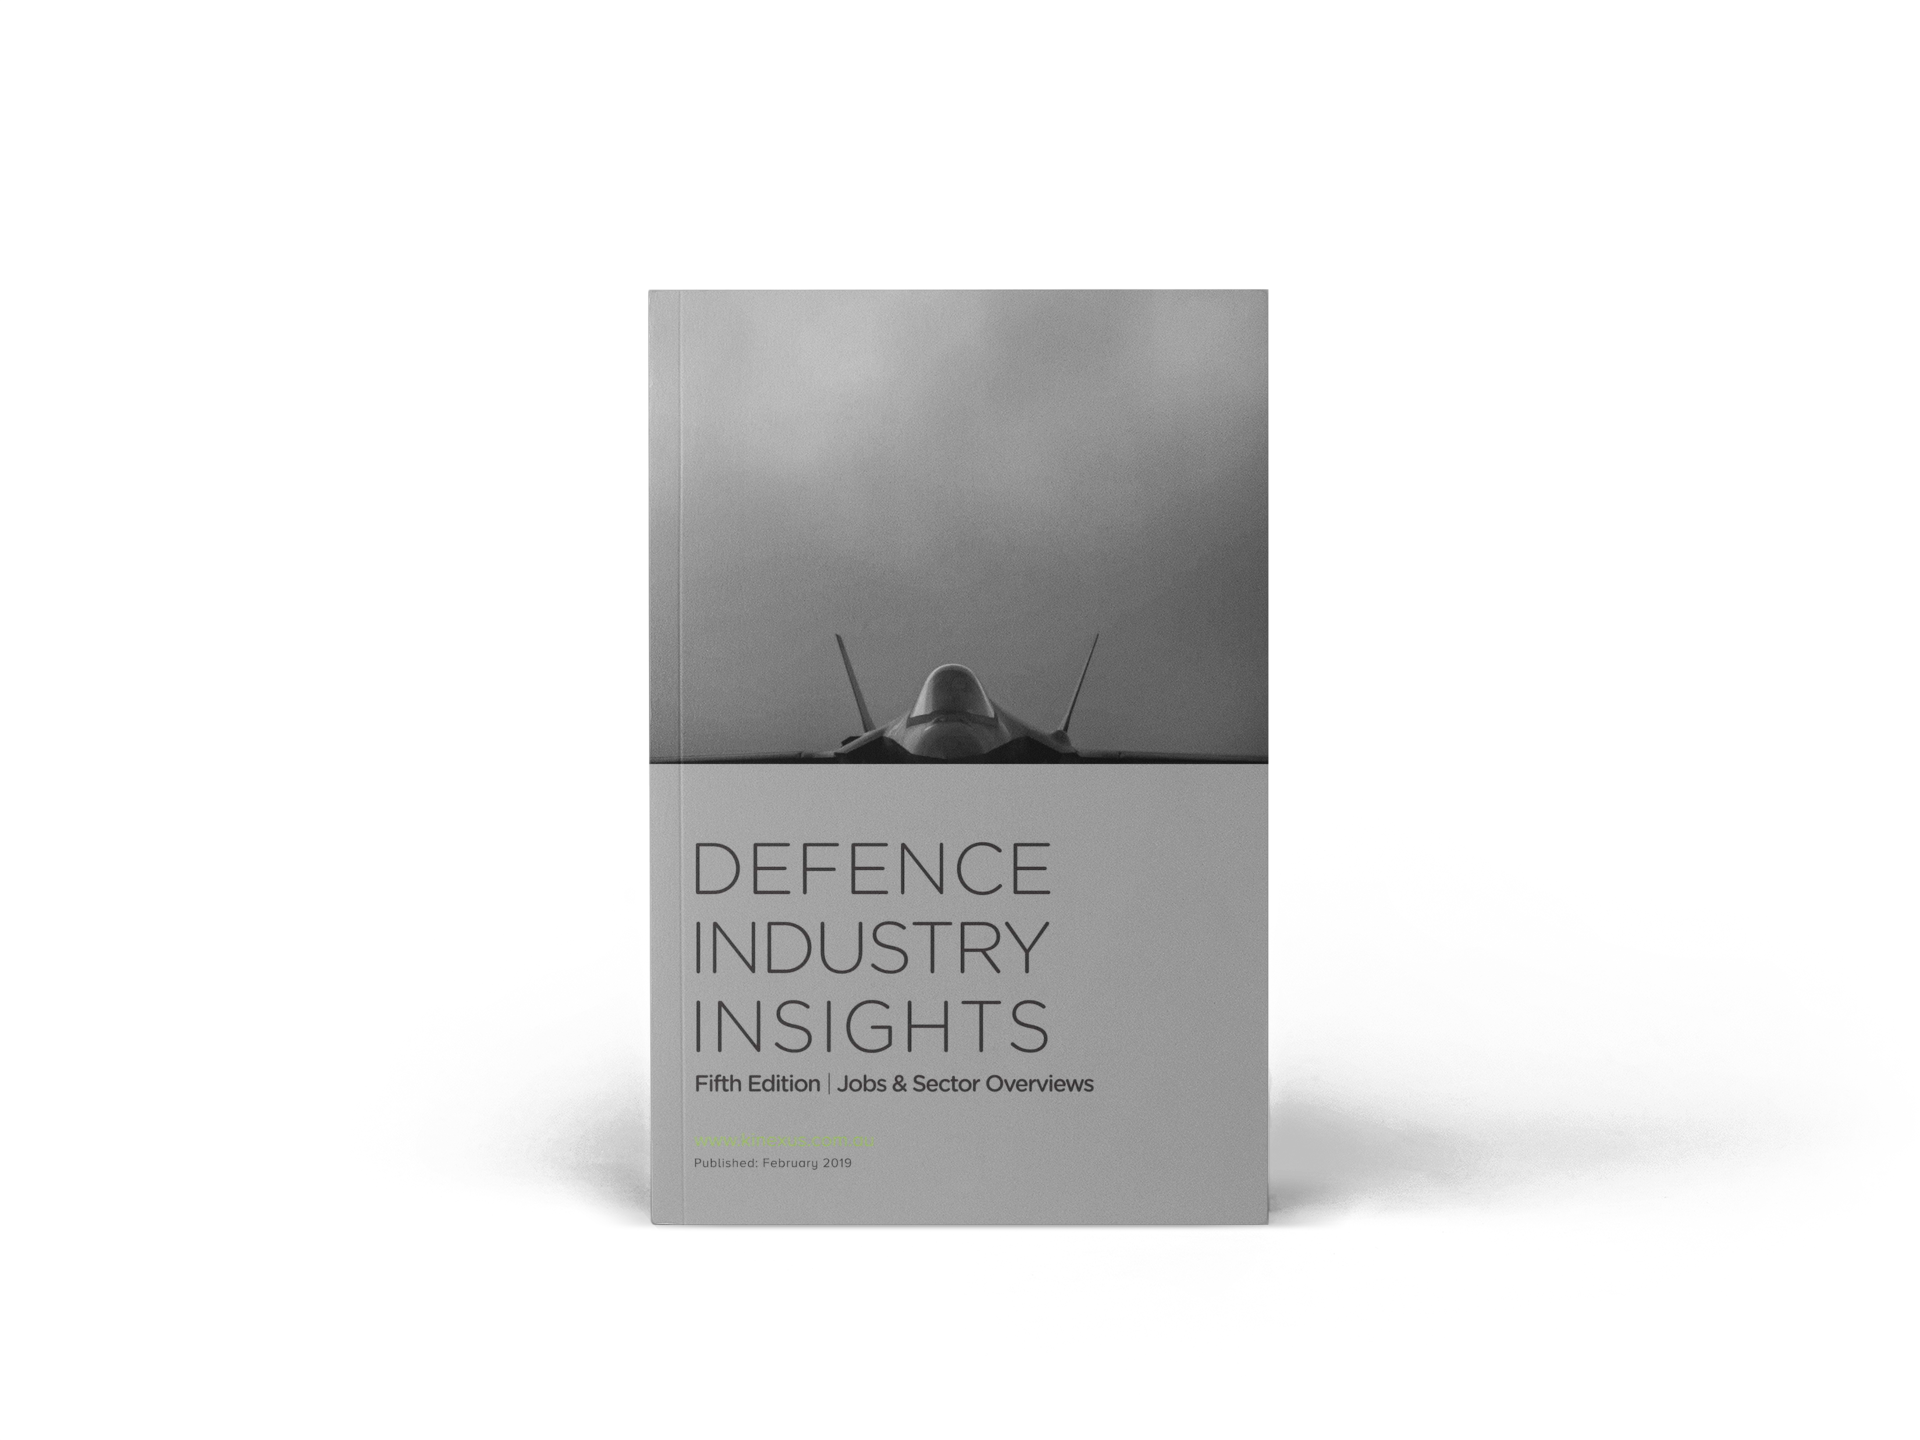 Defence Industry Insights - 5th Edition